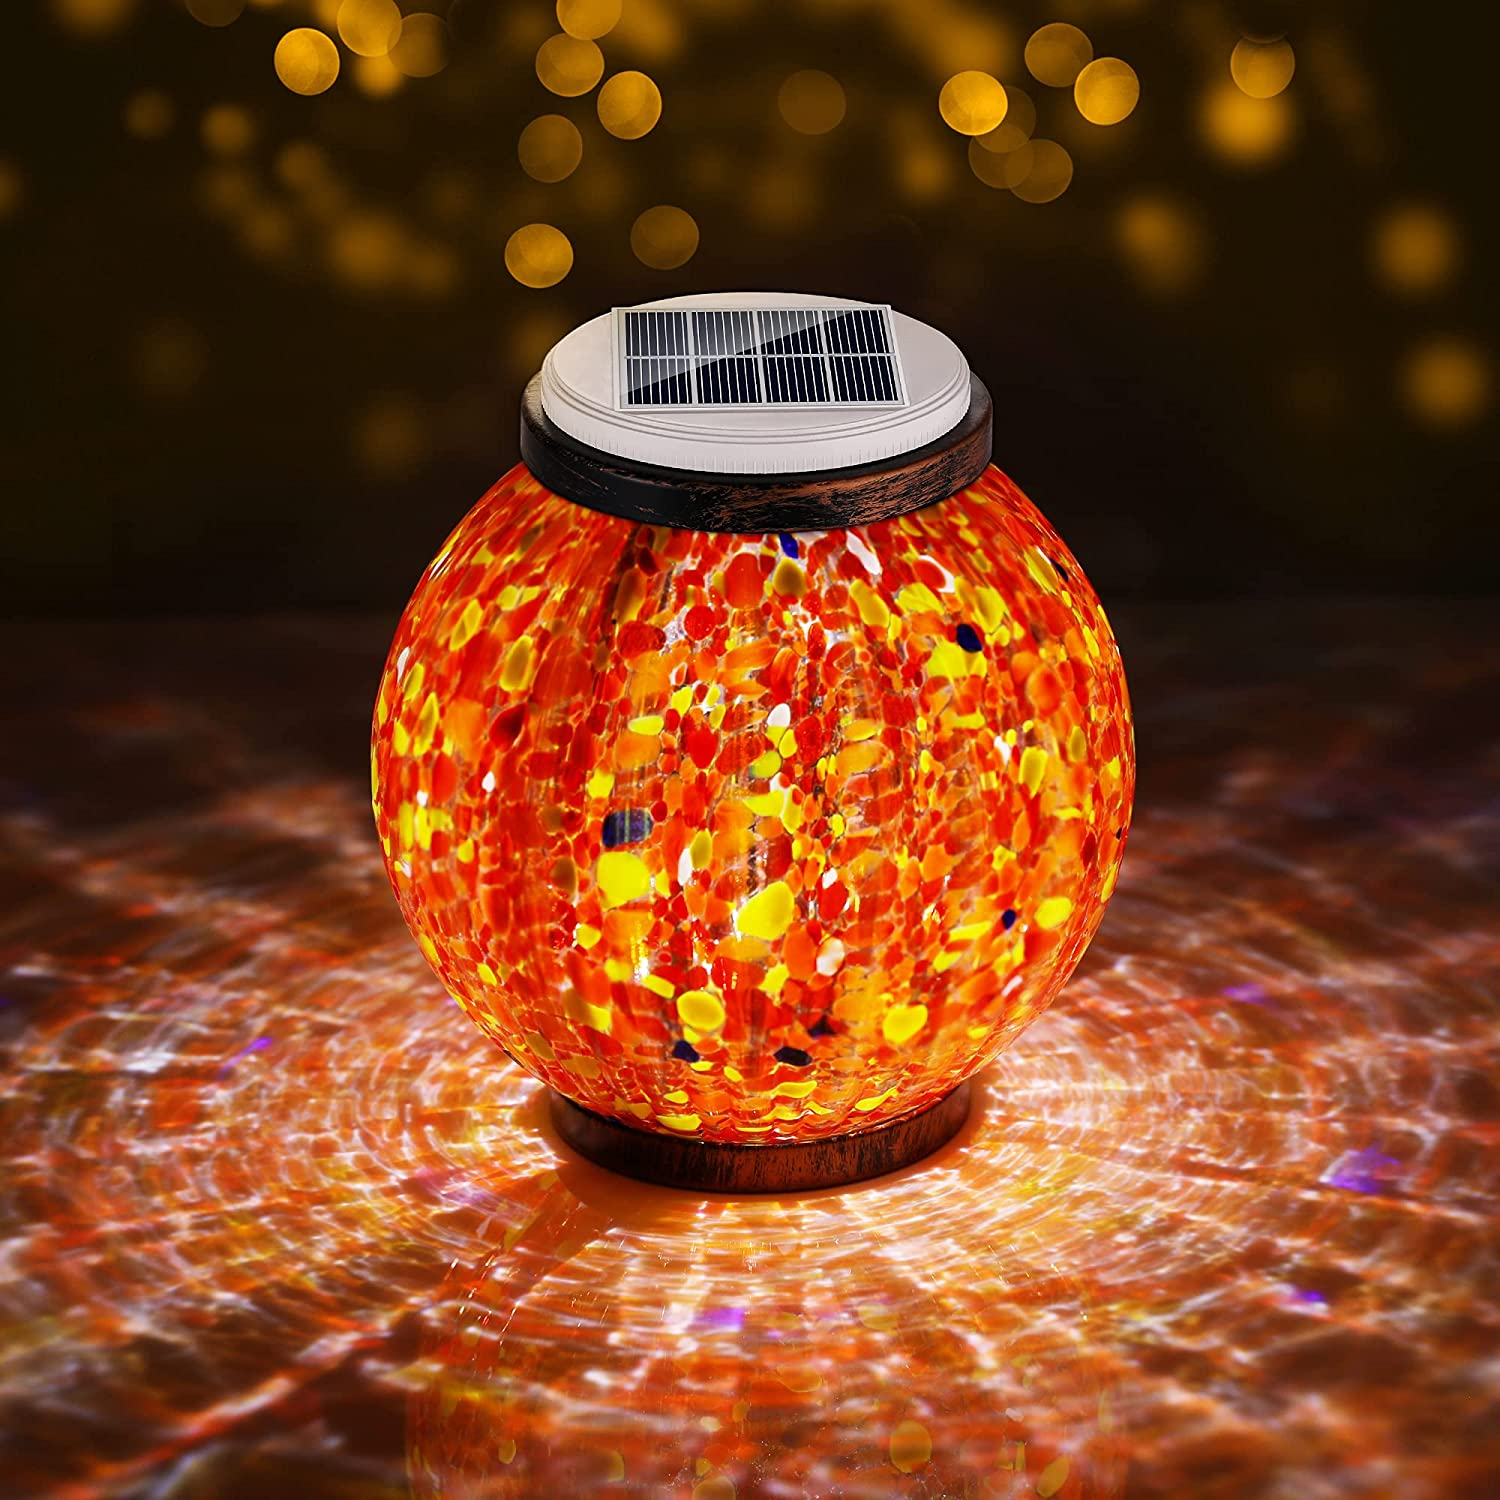 Max 65% OFF Elocupwe Mosaic Solar Garden Hanging Outdoor Light Rechargeable outlet